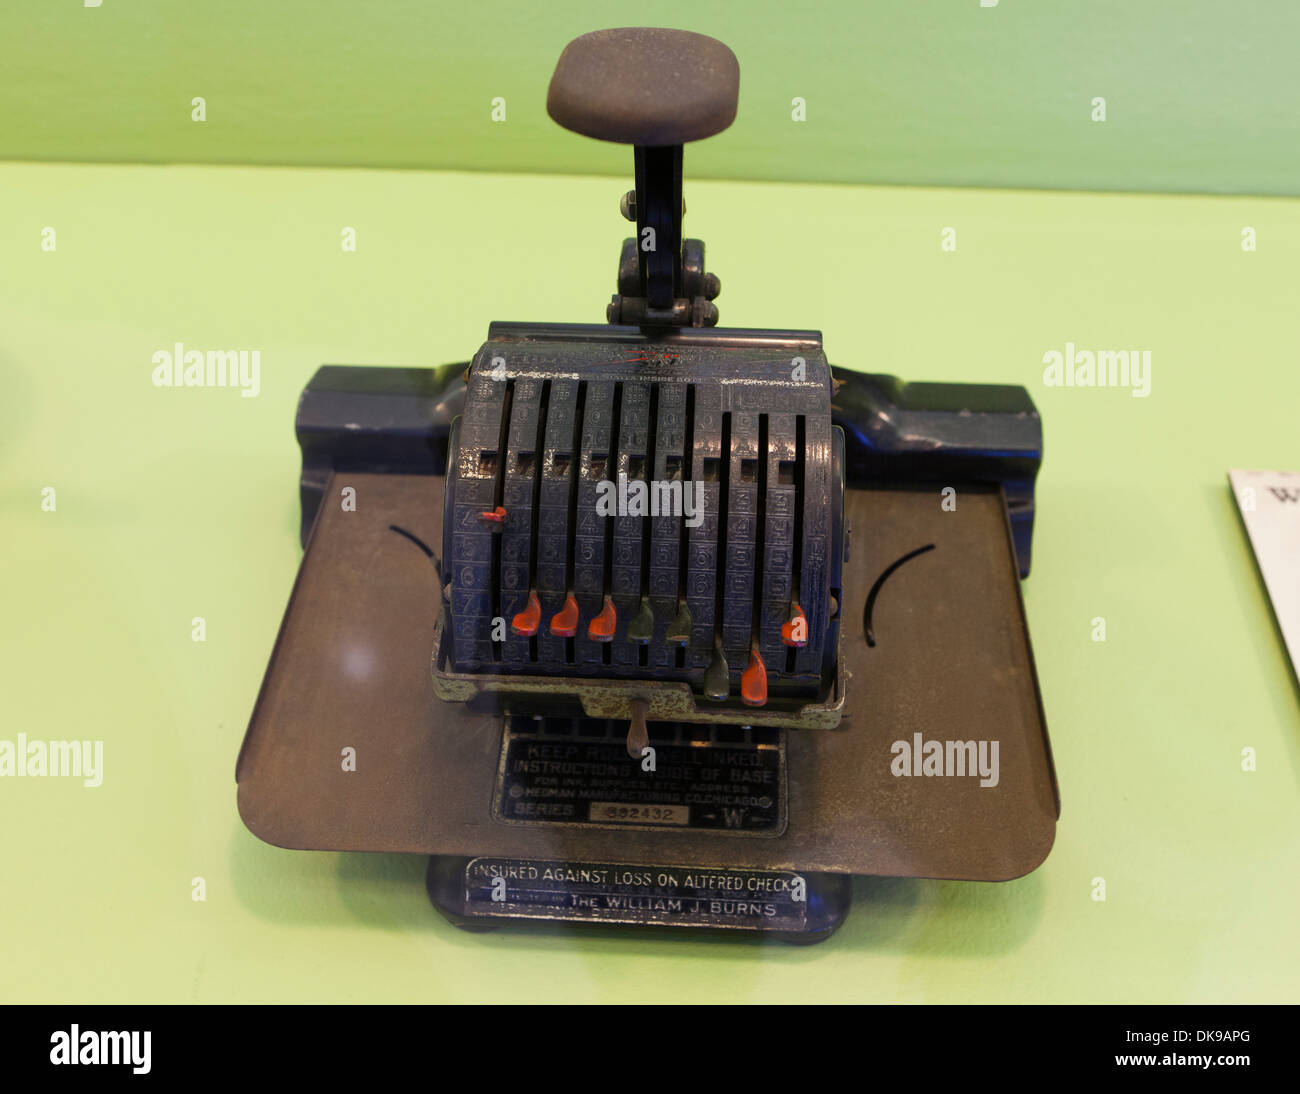 vintage F&E Lightning Check Writer machine, c. 1920 - Stock Image